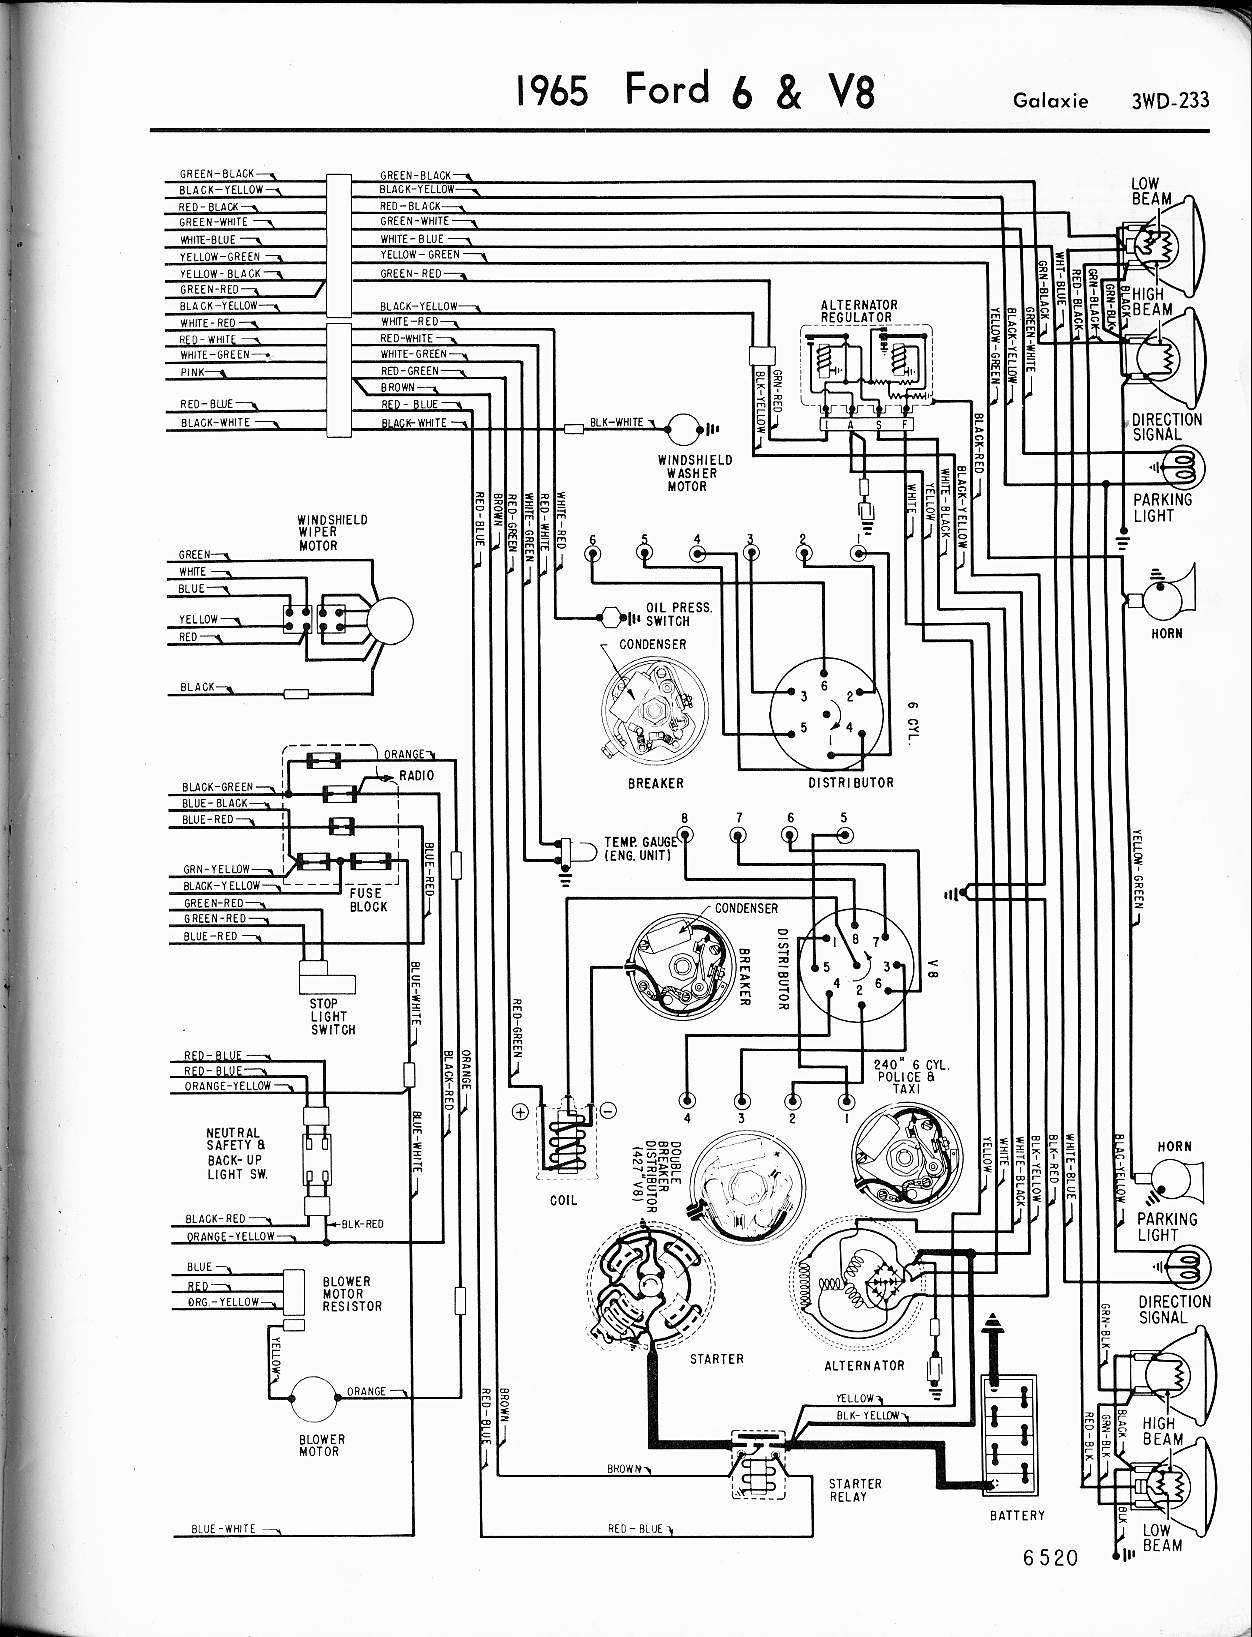 hight resolution of 1965 ford f 350 wiring diagram wiring diagram third level 1977 ford f 250 wiring diagram 1965 ford f250 wiring diagram